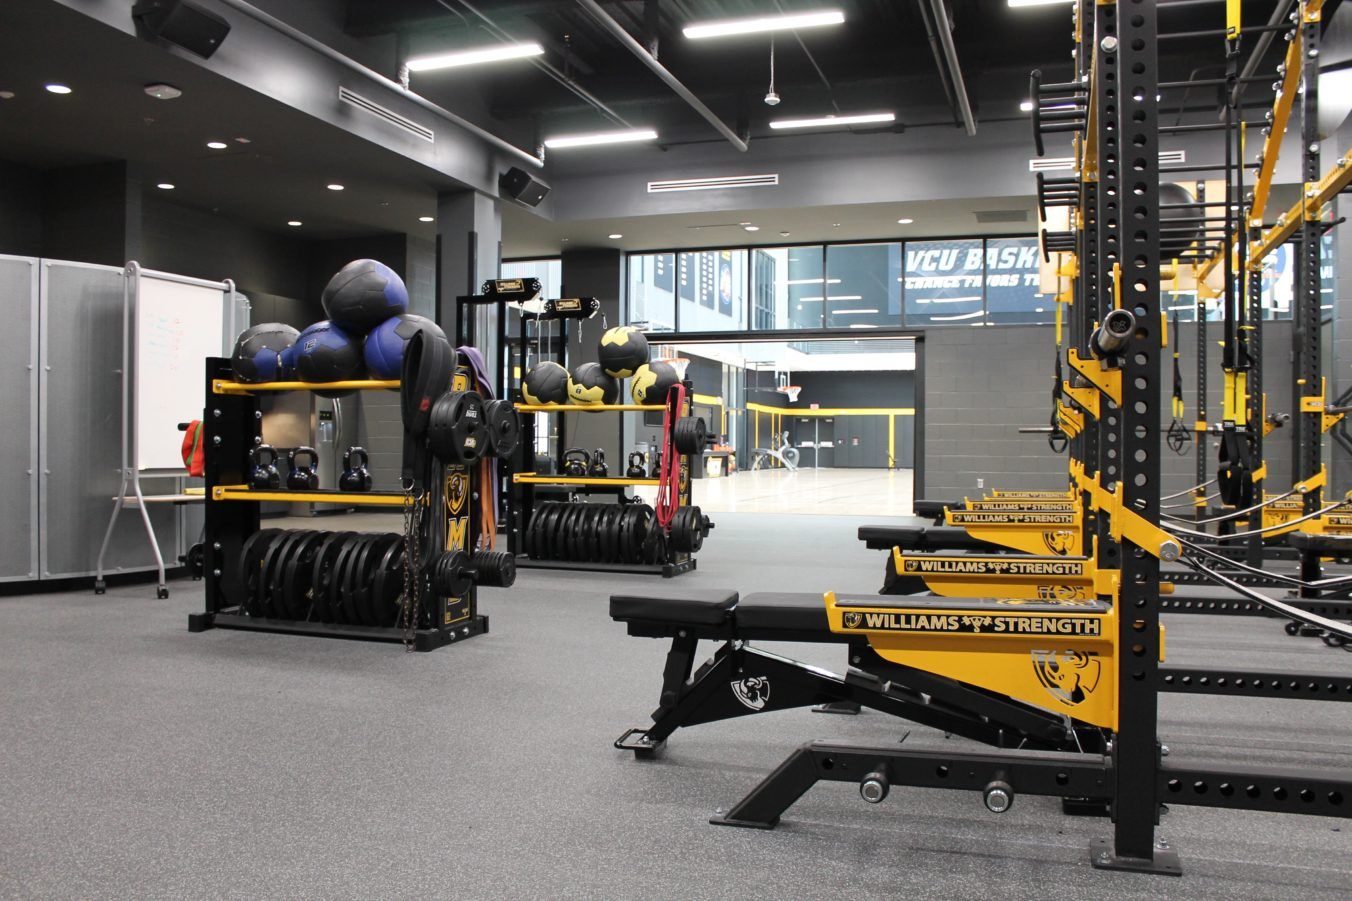 Free weights and exercise equipment in training room